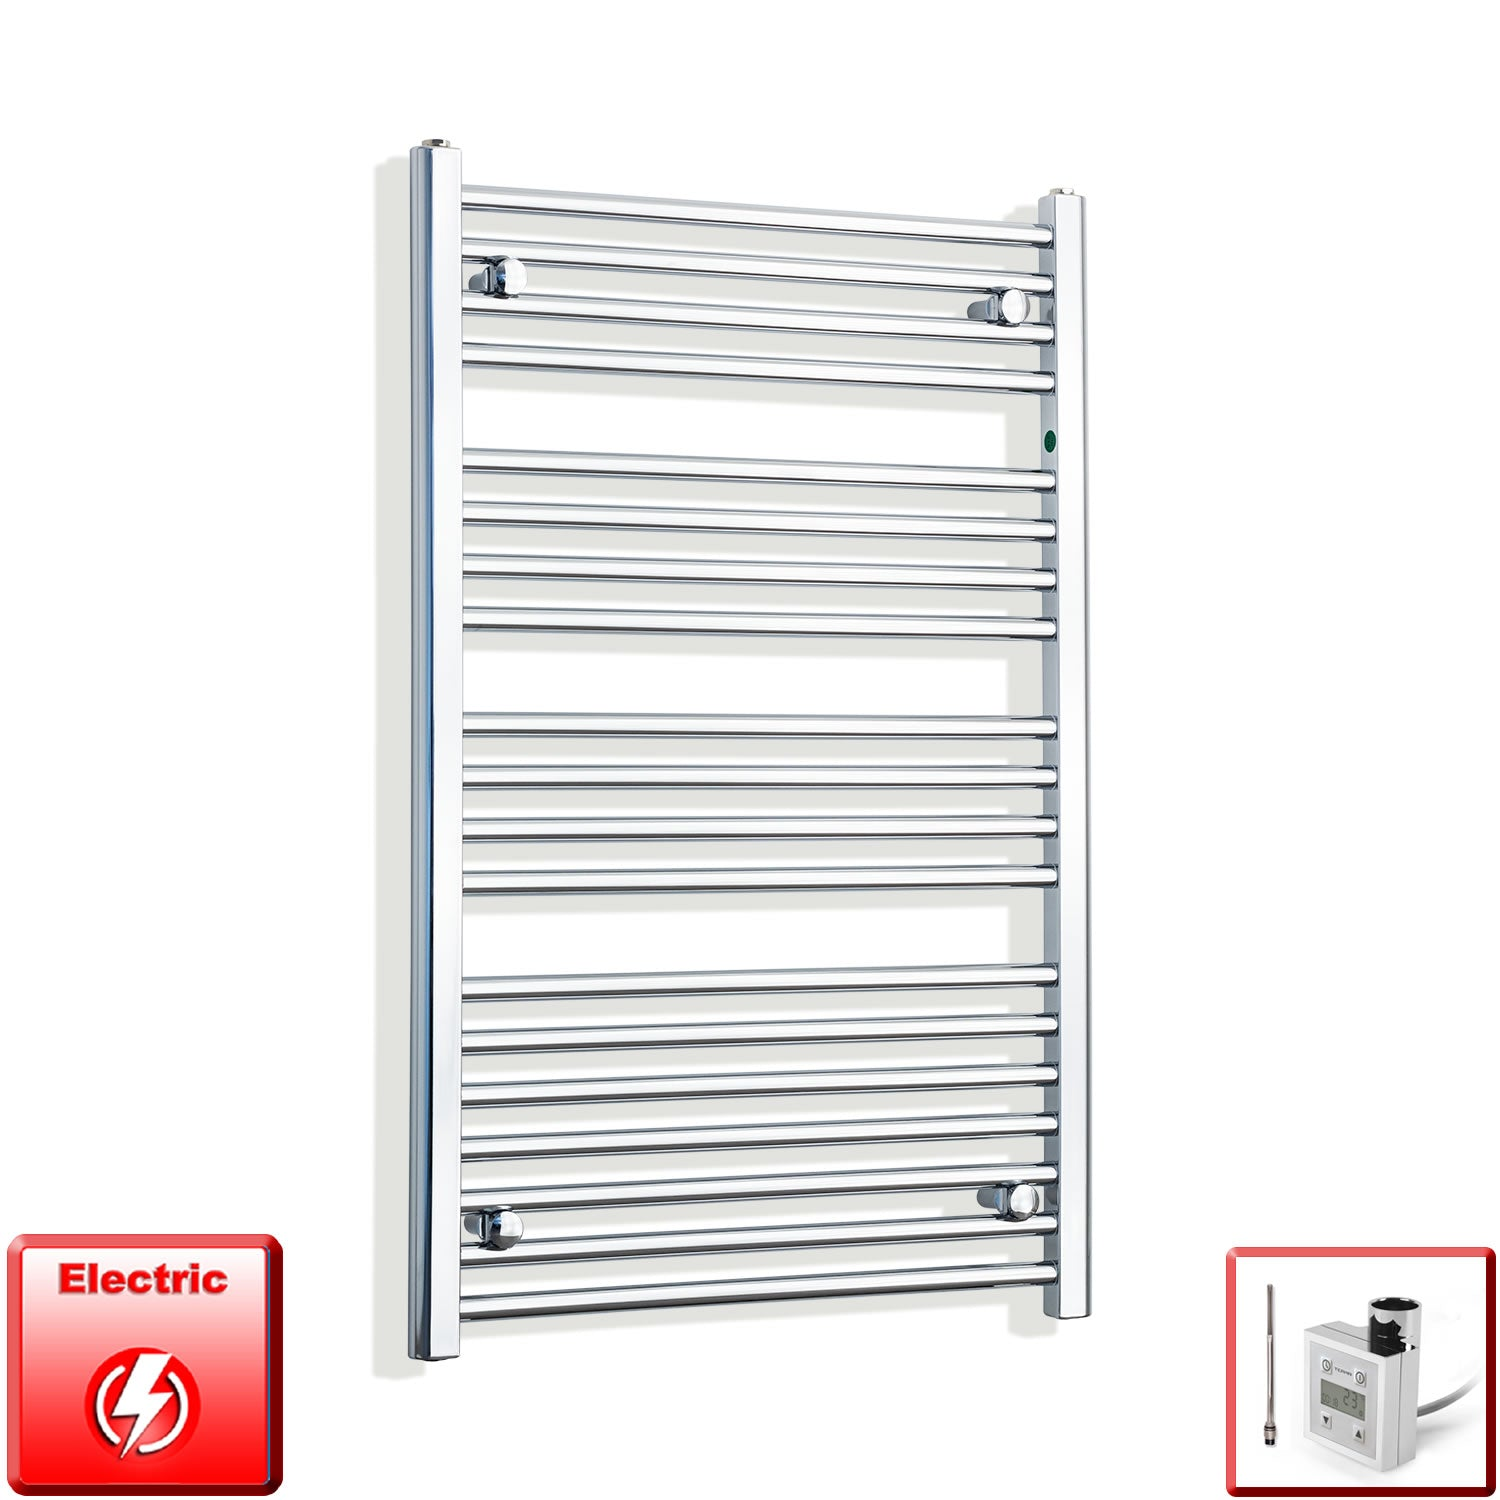 700mm Wide 1000mm High Flat Or Curved Chrome Pre-Filled Electric Heated Towel Rail Radiator HTR,KTX-3 Thermostatic Element / Straight